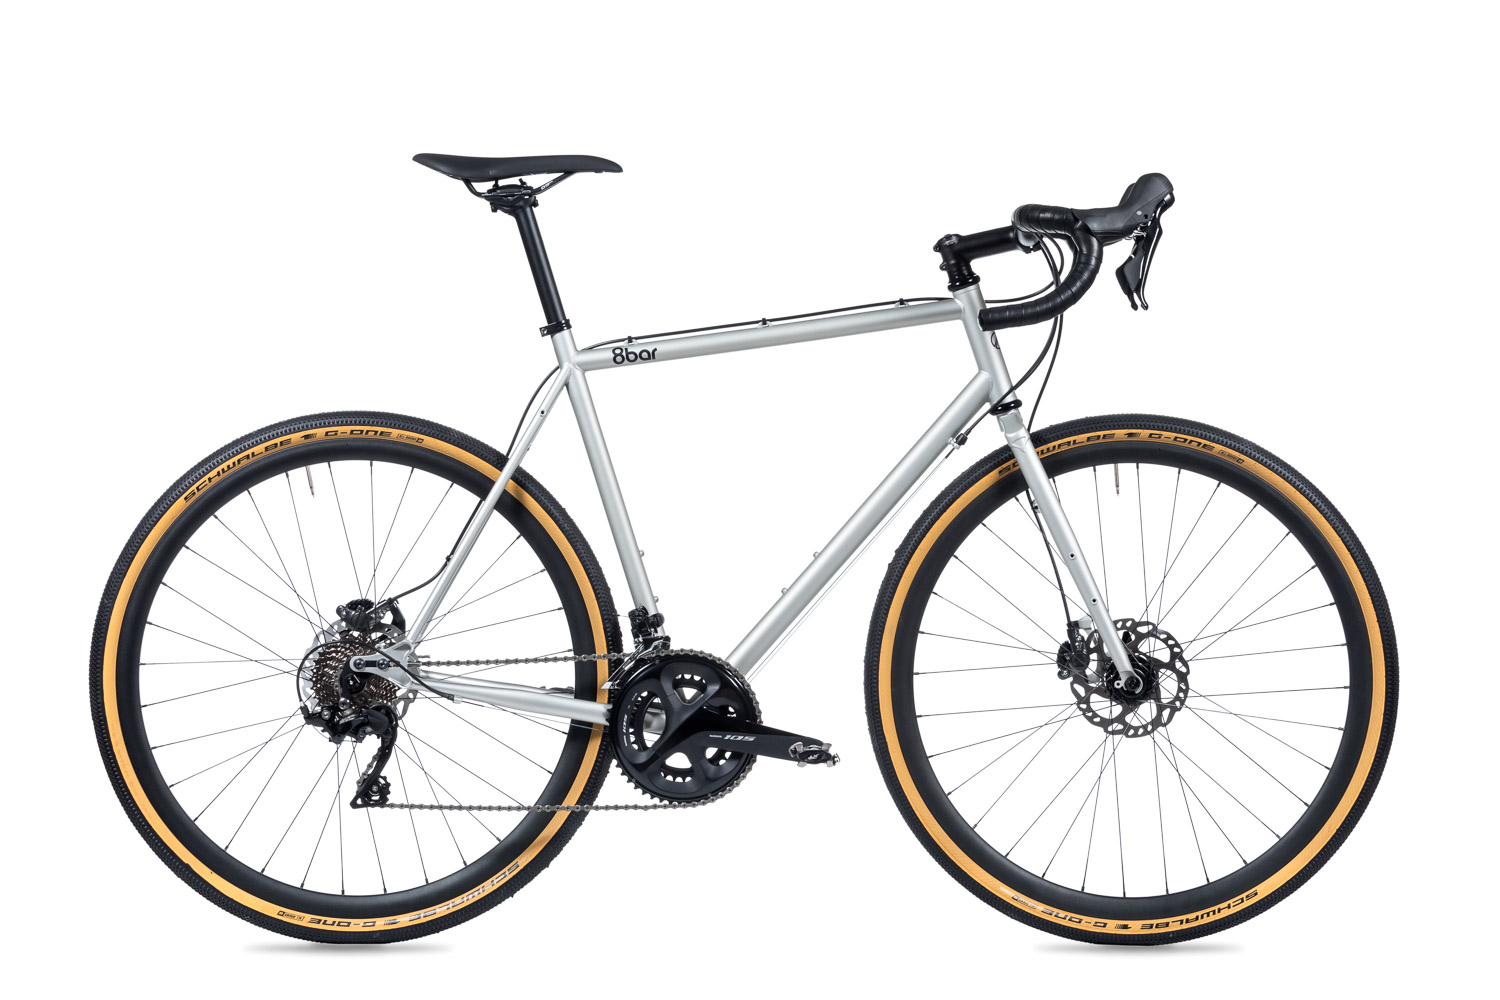 8bar complete bike mitte steel silver cx pro studio-1